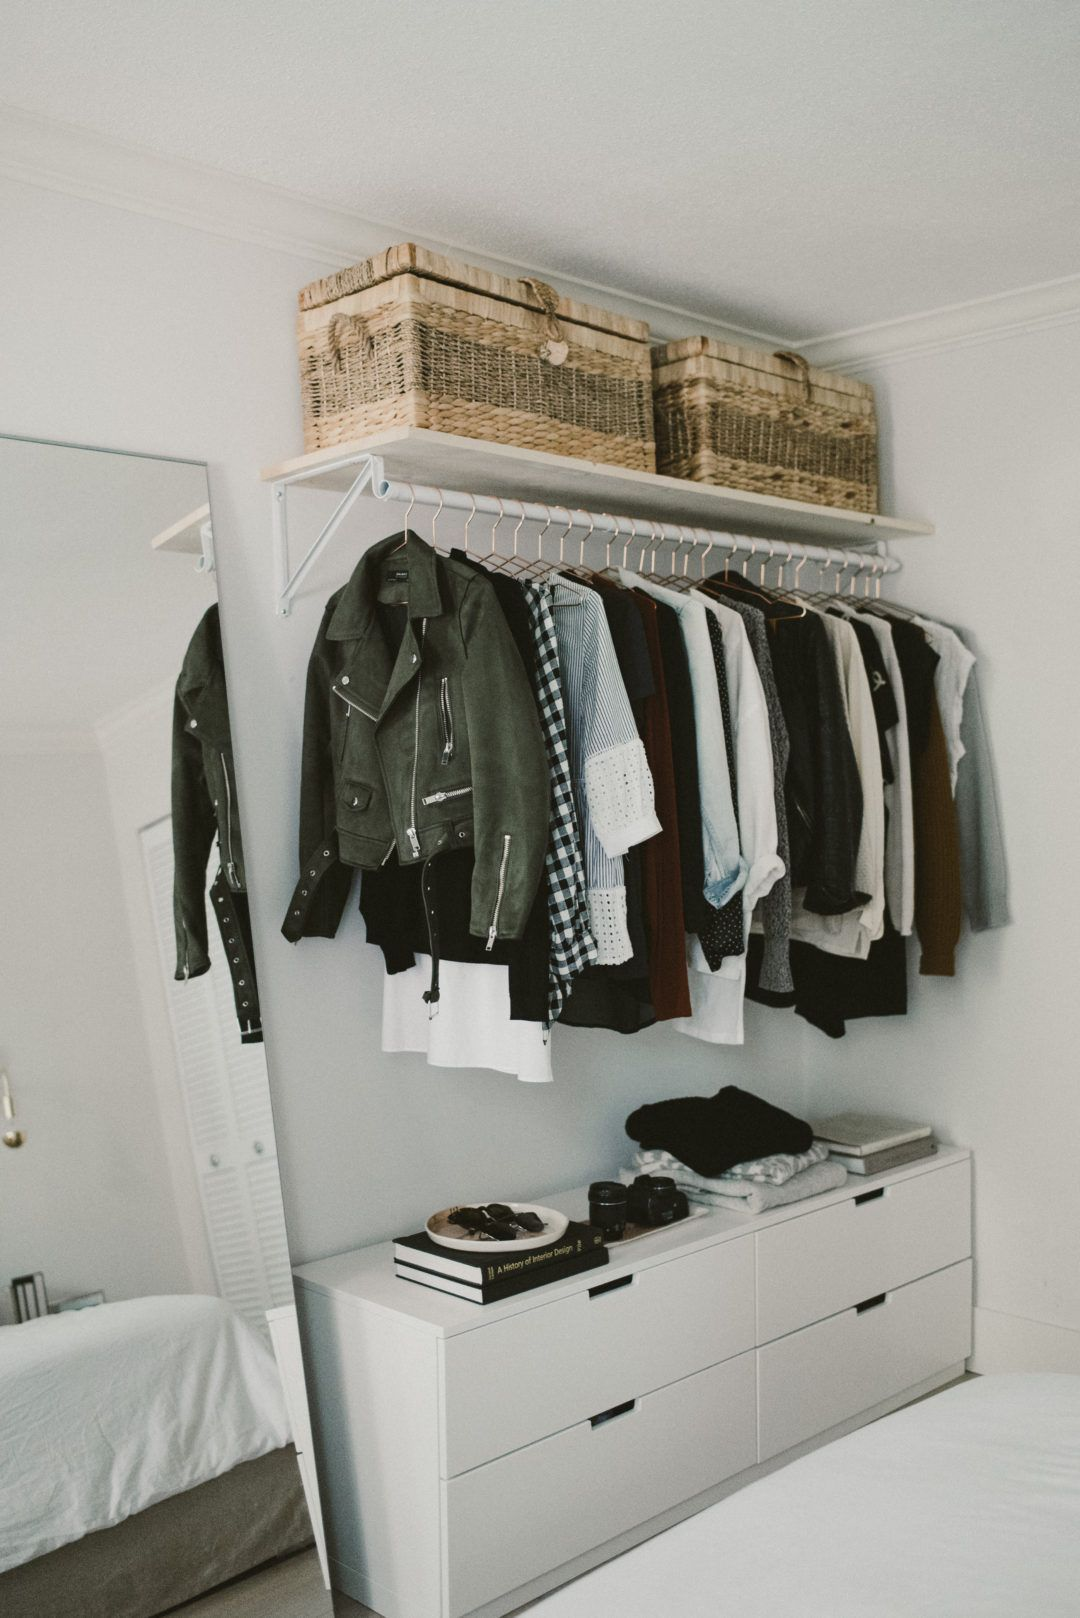 Closet Decluttering Tips How To Declutter Your Wardrobe How To Organize A Closet Diy Open Concept Closet Ideas Open Closet Open Wardrobe Closet Inspiration